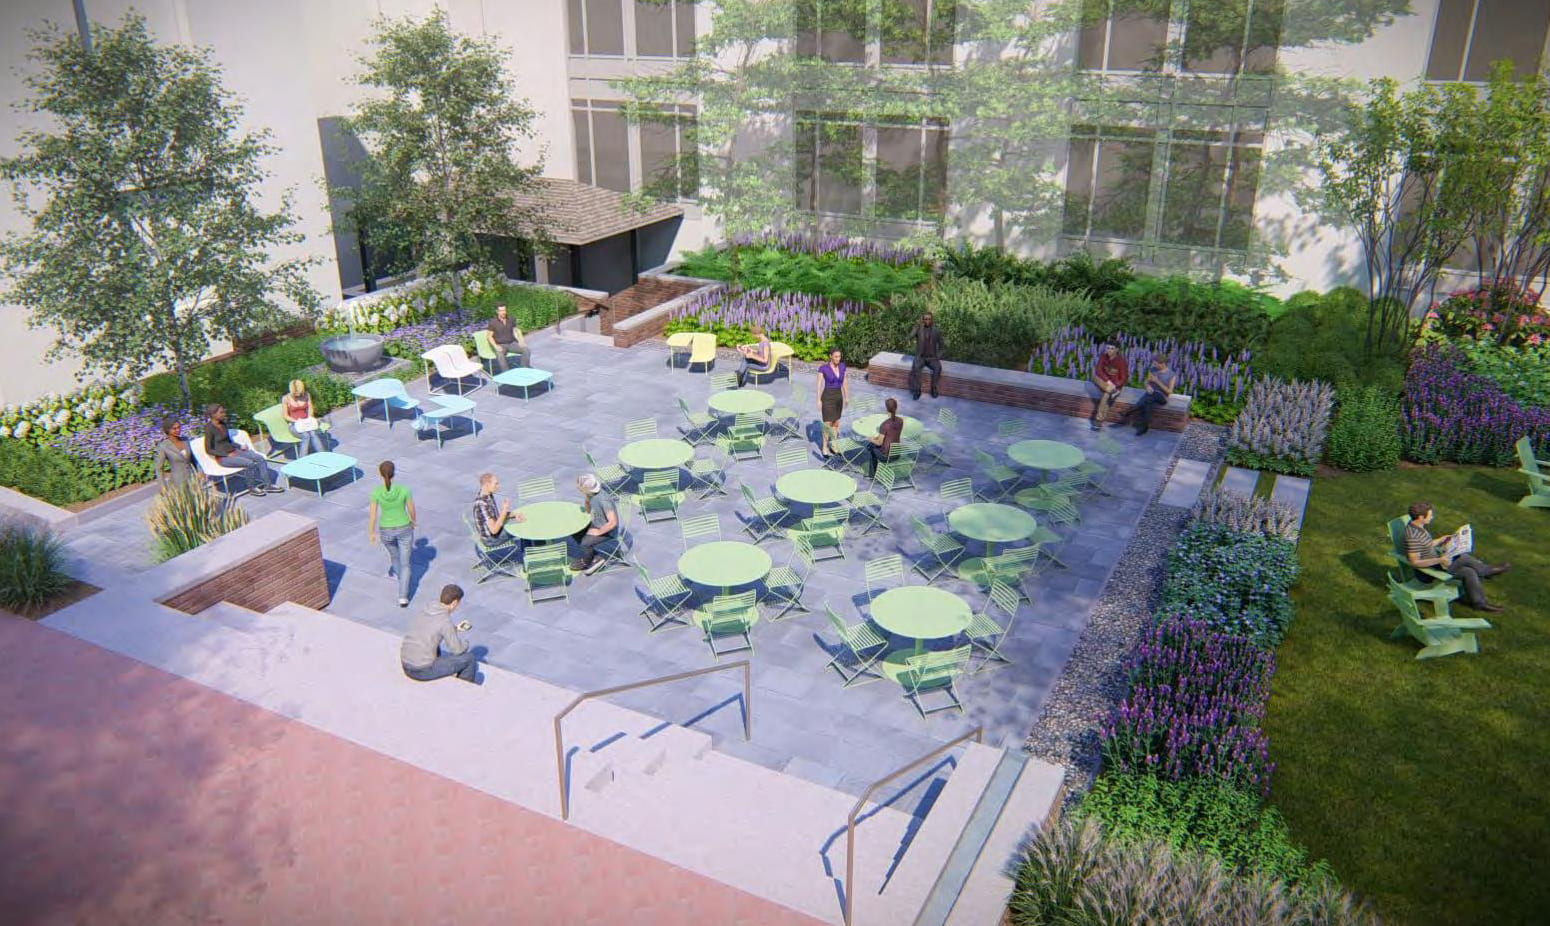 Faculty collaboration at William & Mary led to the plans for a new outdoor study space. William & Mary